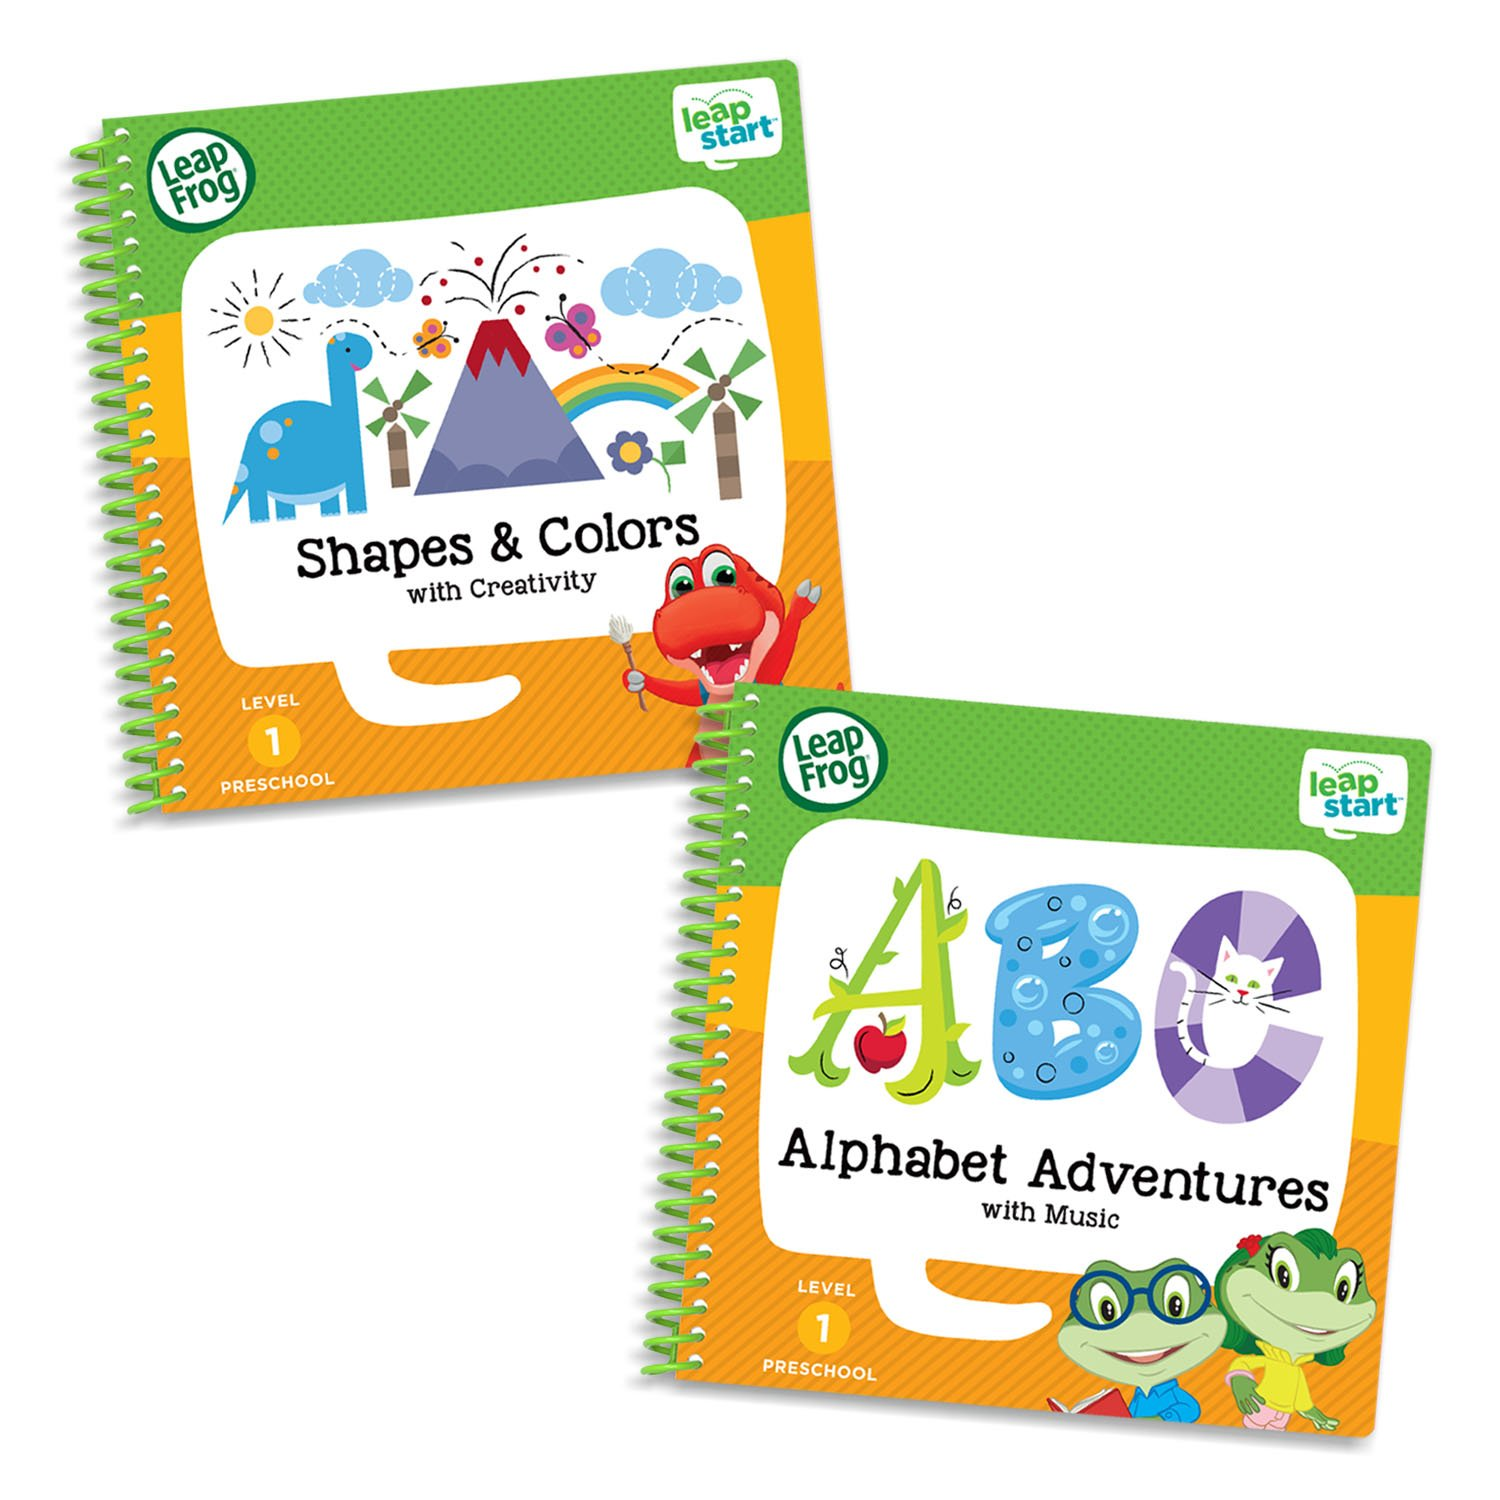 LeapFrog Leapstart Preschool Activity Book Bundle with ABC, Shapes & Colors, Level 1 by LeapFrog